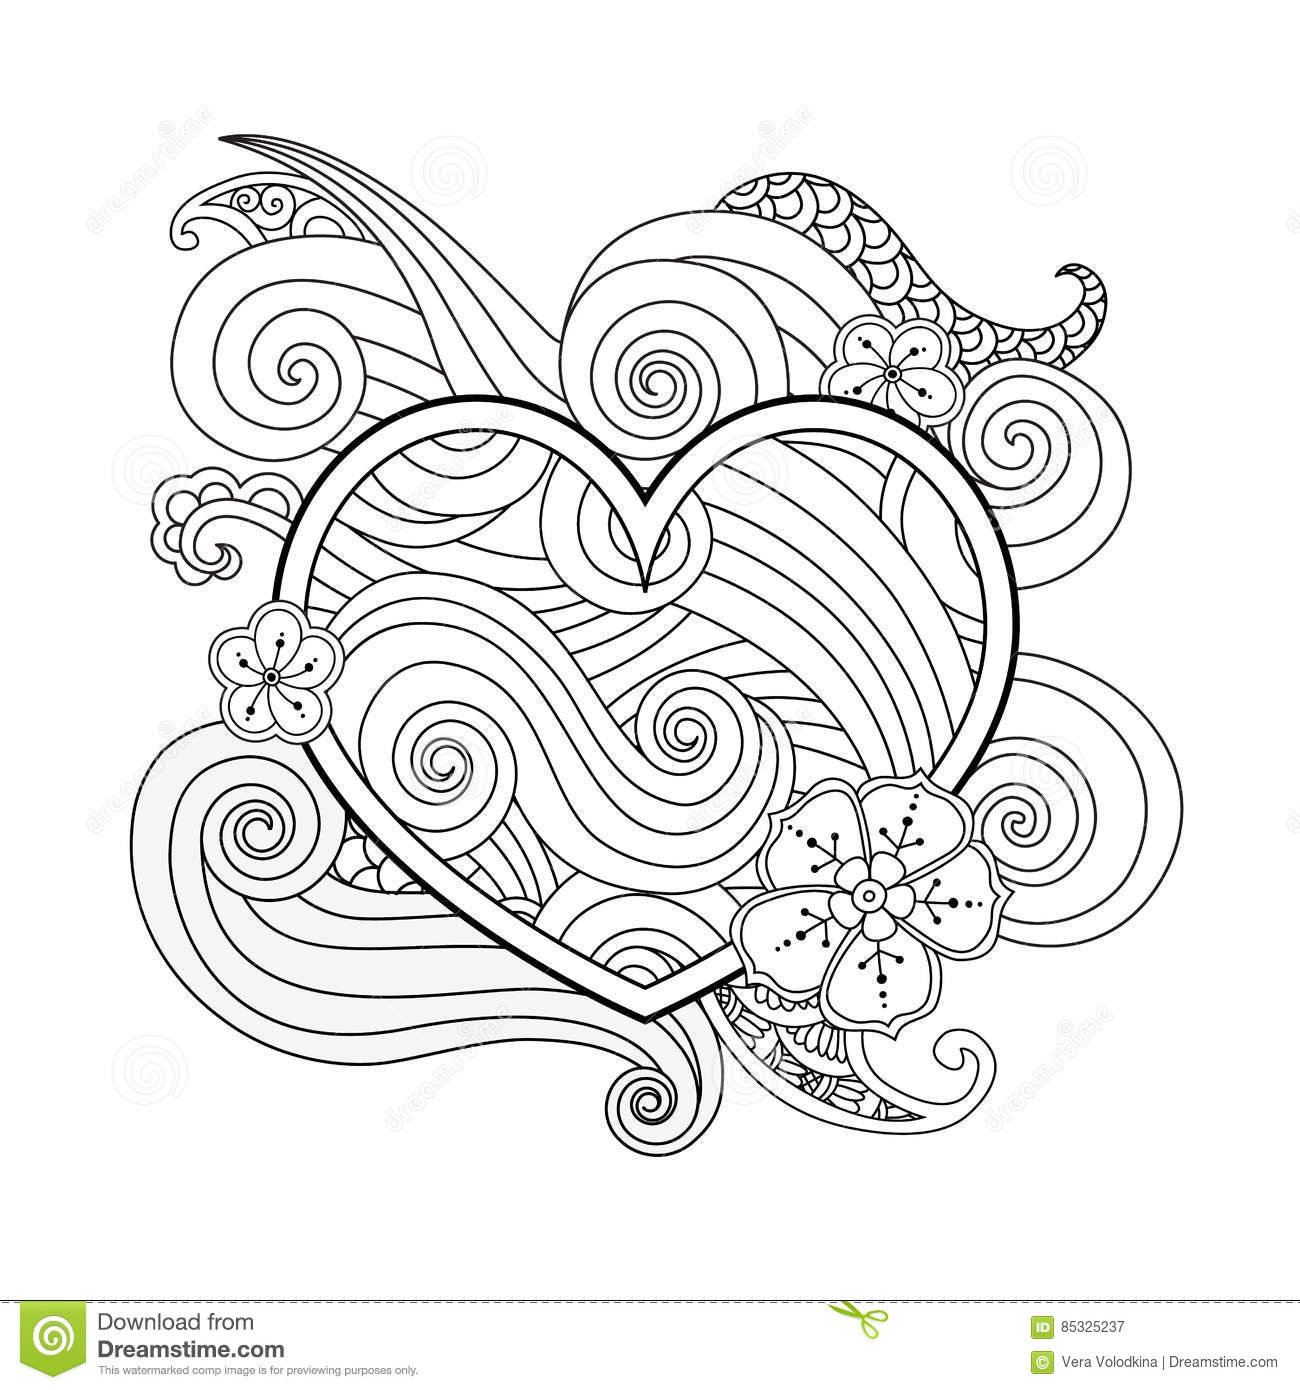 Coloring Page With Heart And Abstract Element Isolated ...